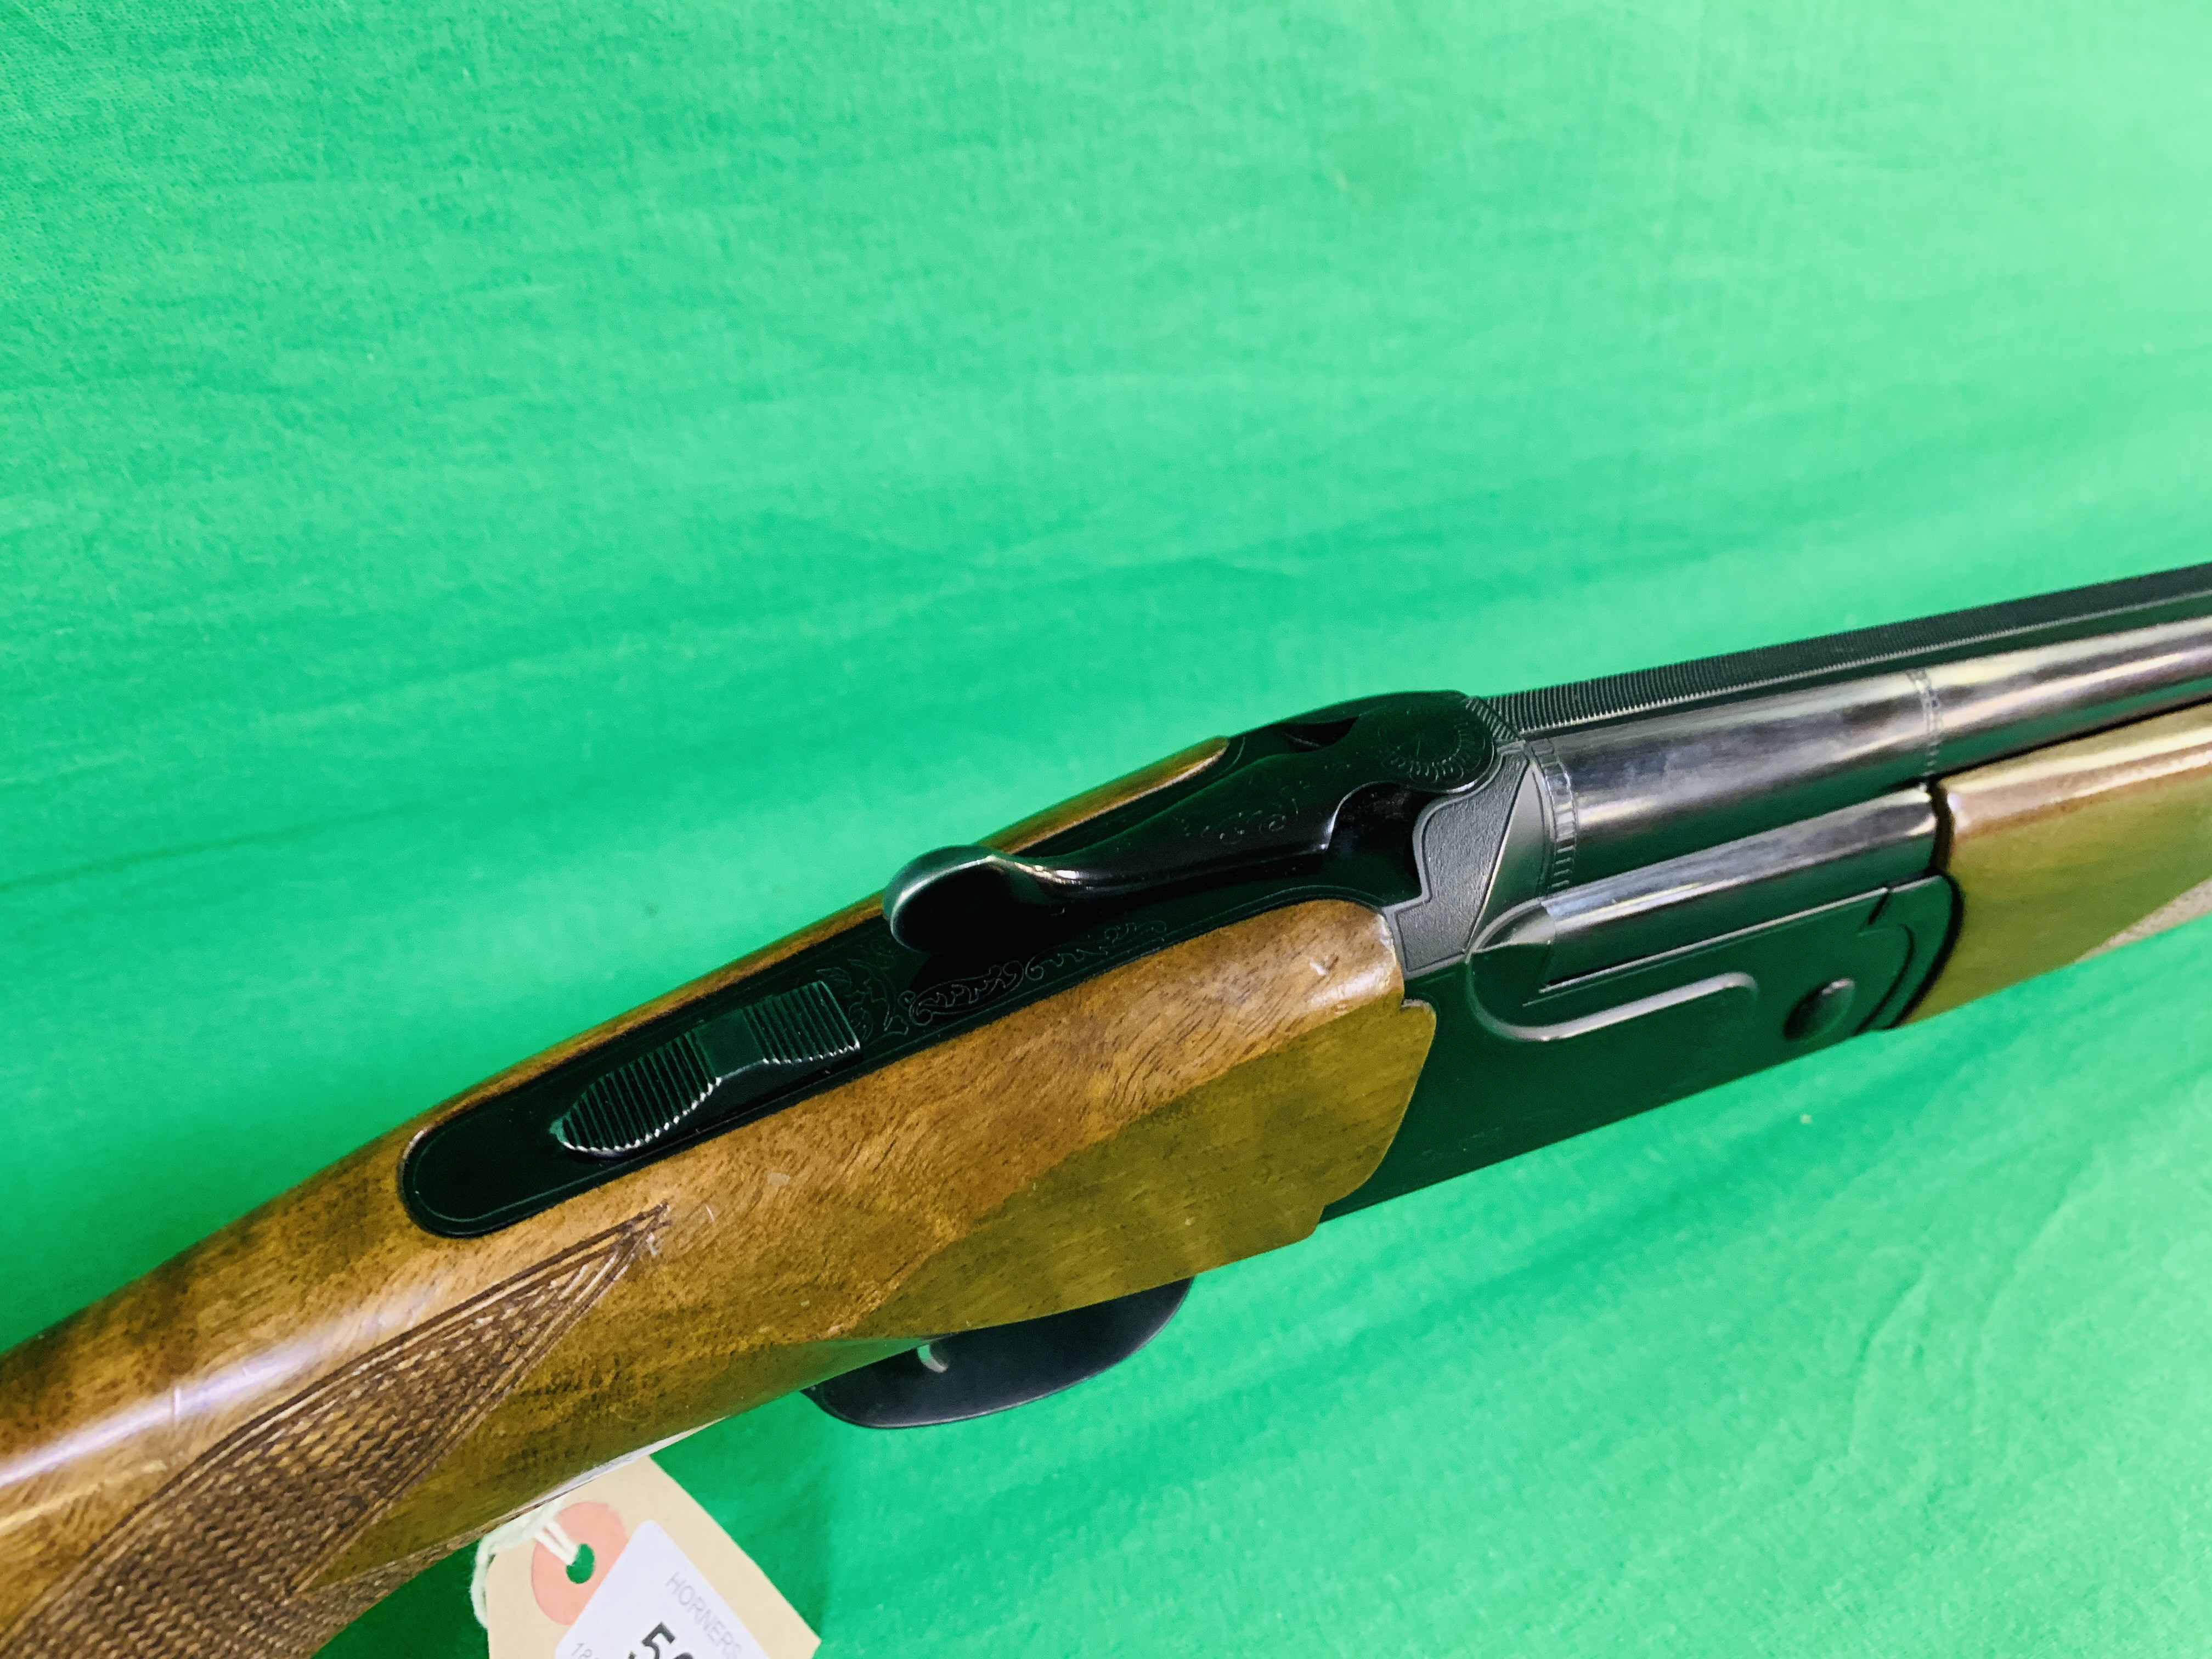 ZAFER MODEL 01612 12 BORE OVER AND UNDER SHOTGUN # 01483, SELECTABLE SINGLE TRIGGER, NON EJECTOR, - Image 2 of 8